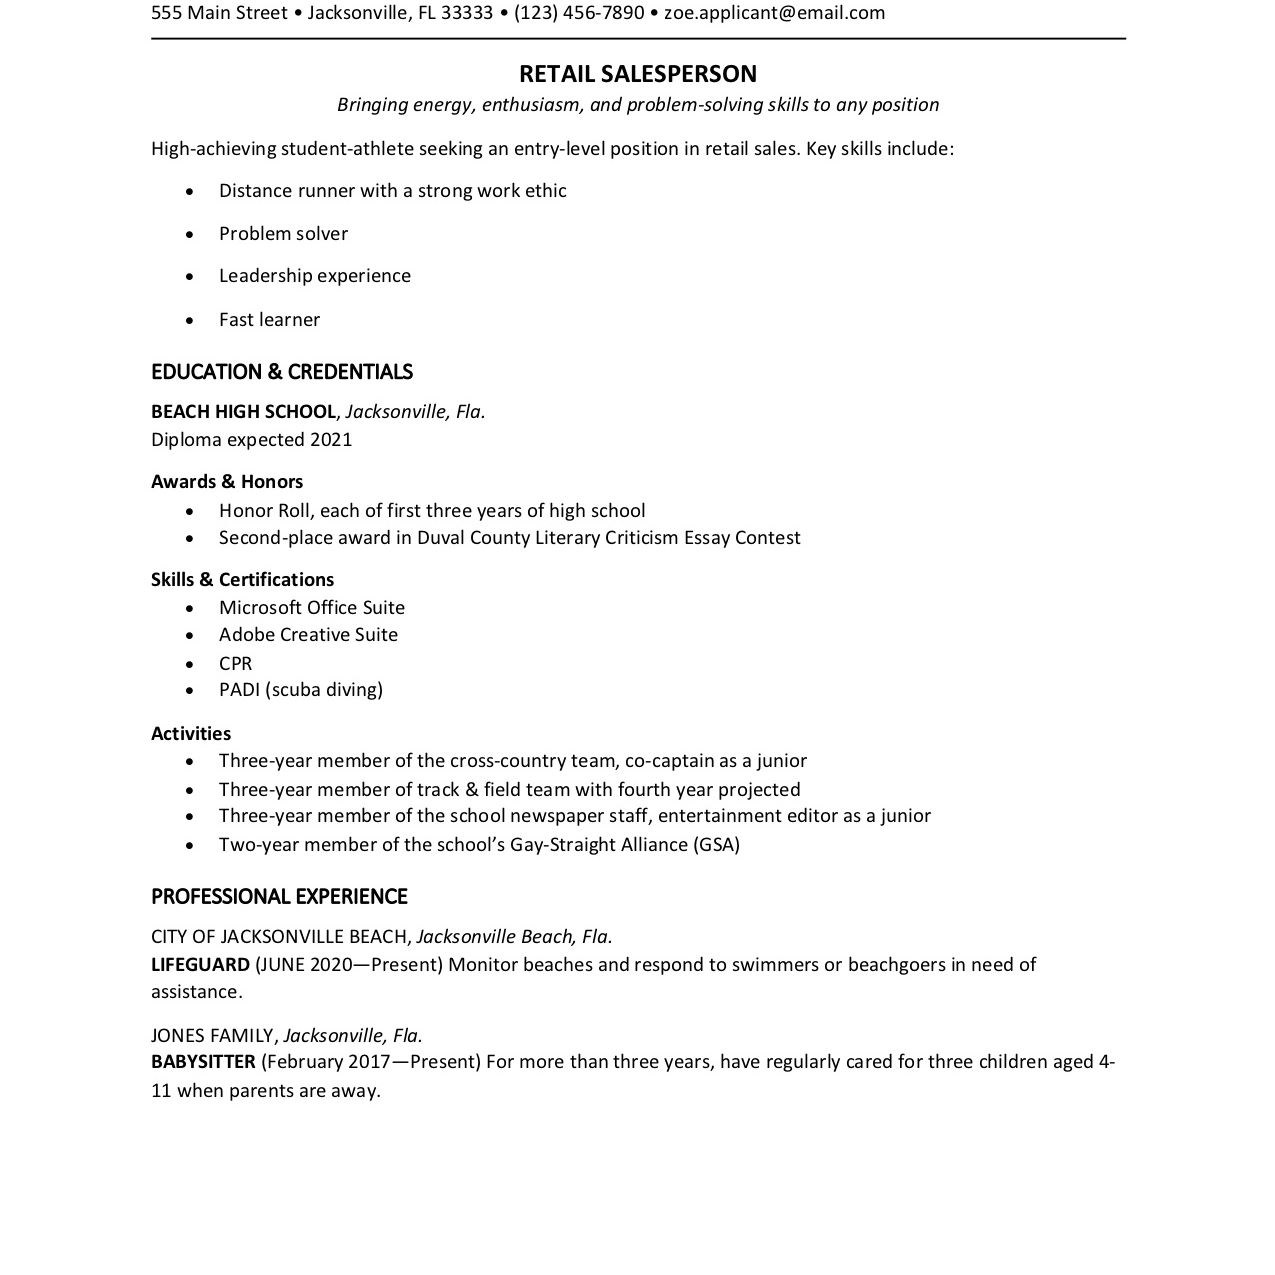 high school student resume template for retail job with no experience jesus jara writing Resume Resume For Retail Job With No Experience